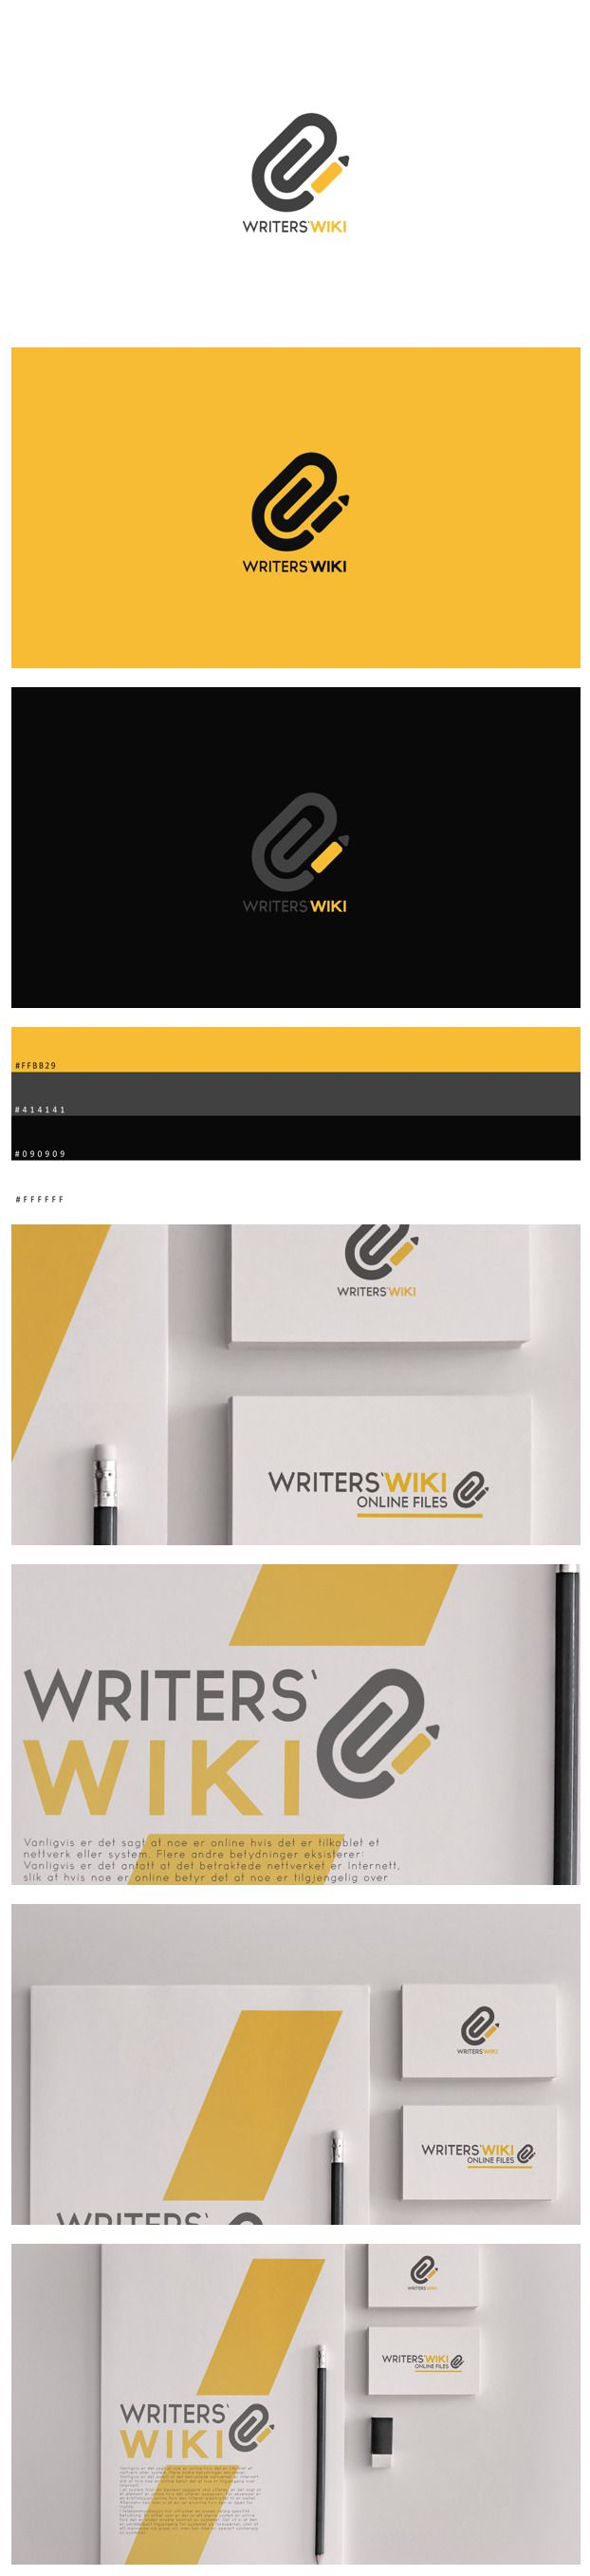 Writers' Wiki by Jørgen Grotdal, via Behance